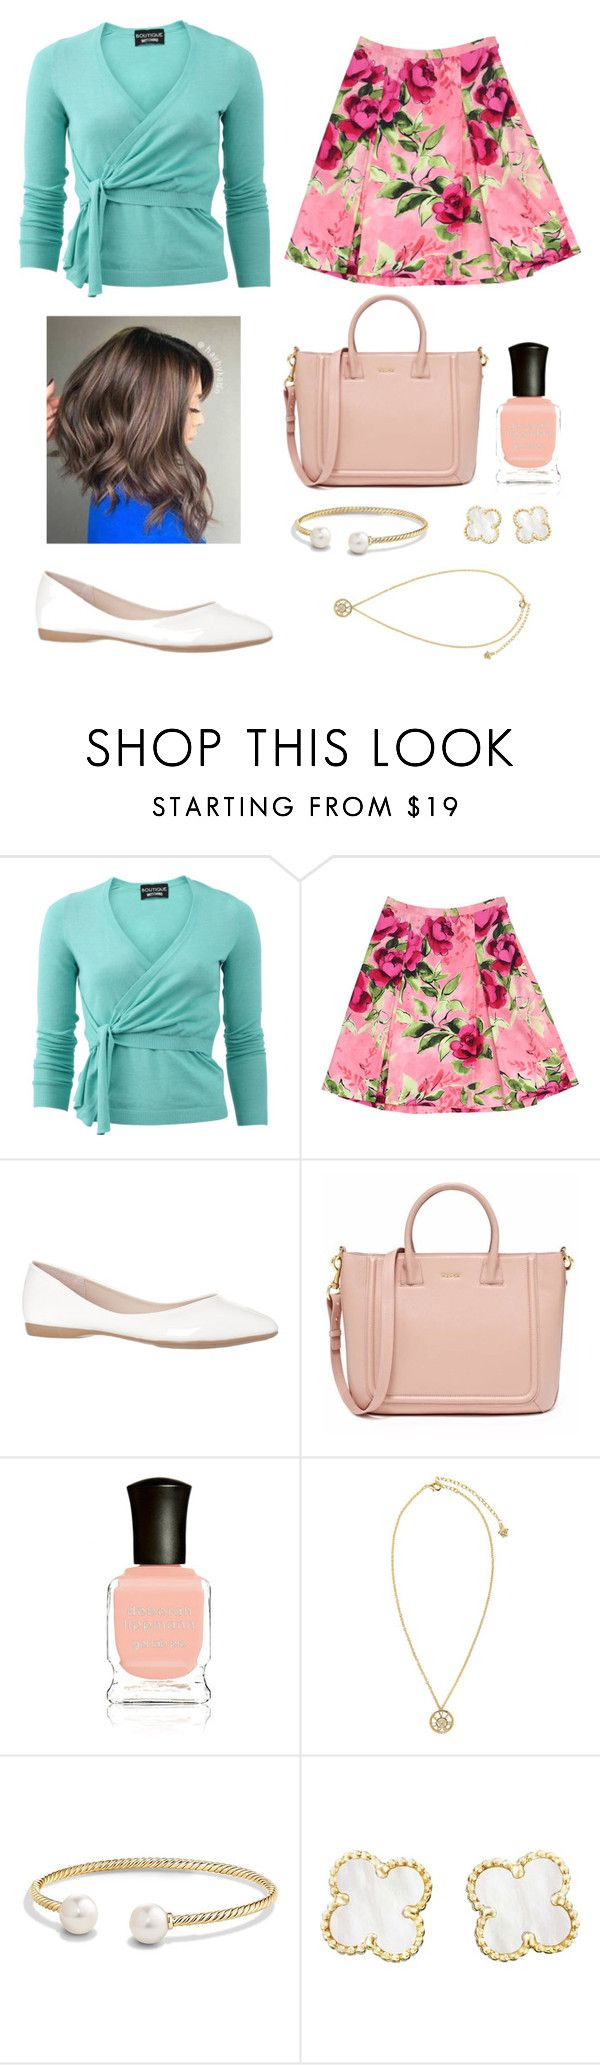 """""""moschino shirt   pink skirt   long bob   white flat   nail with bag"""" by taissax ❤ liked on Polyvore featuring Boutique Moschino, Love Moschino, Deborah Lippmann, Versace, David Yurman and Van Cleef & Arpels"""